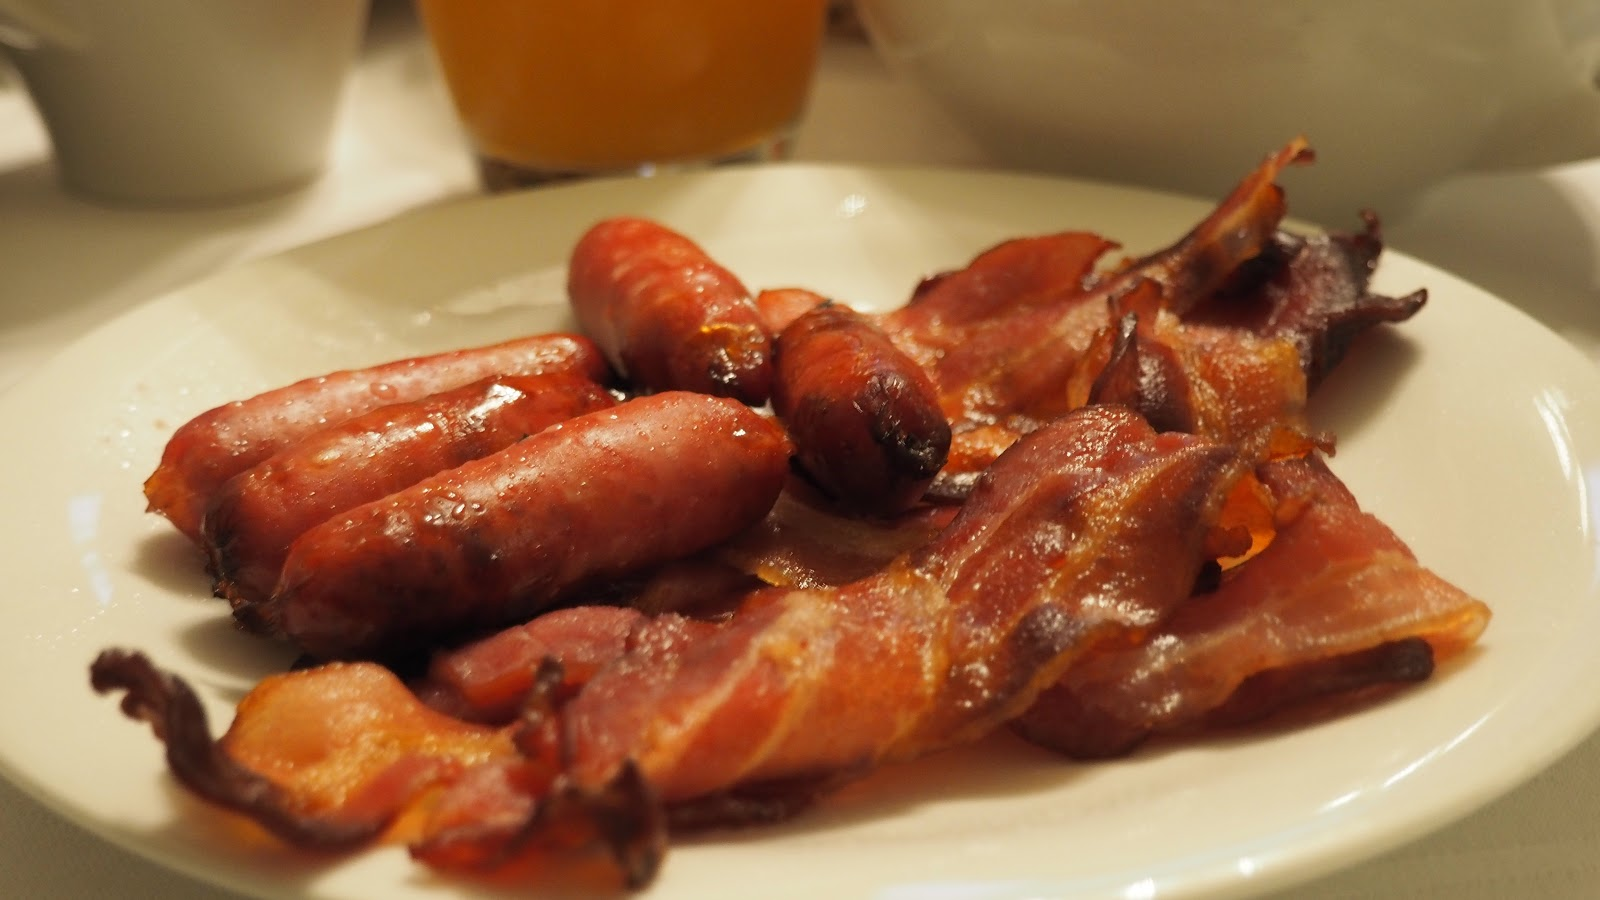 plate of sausages and bacon